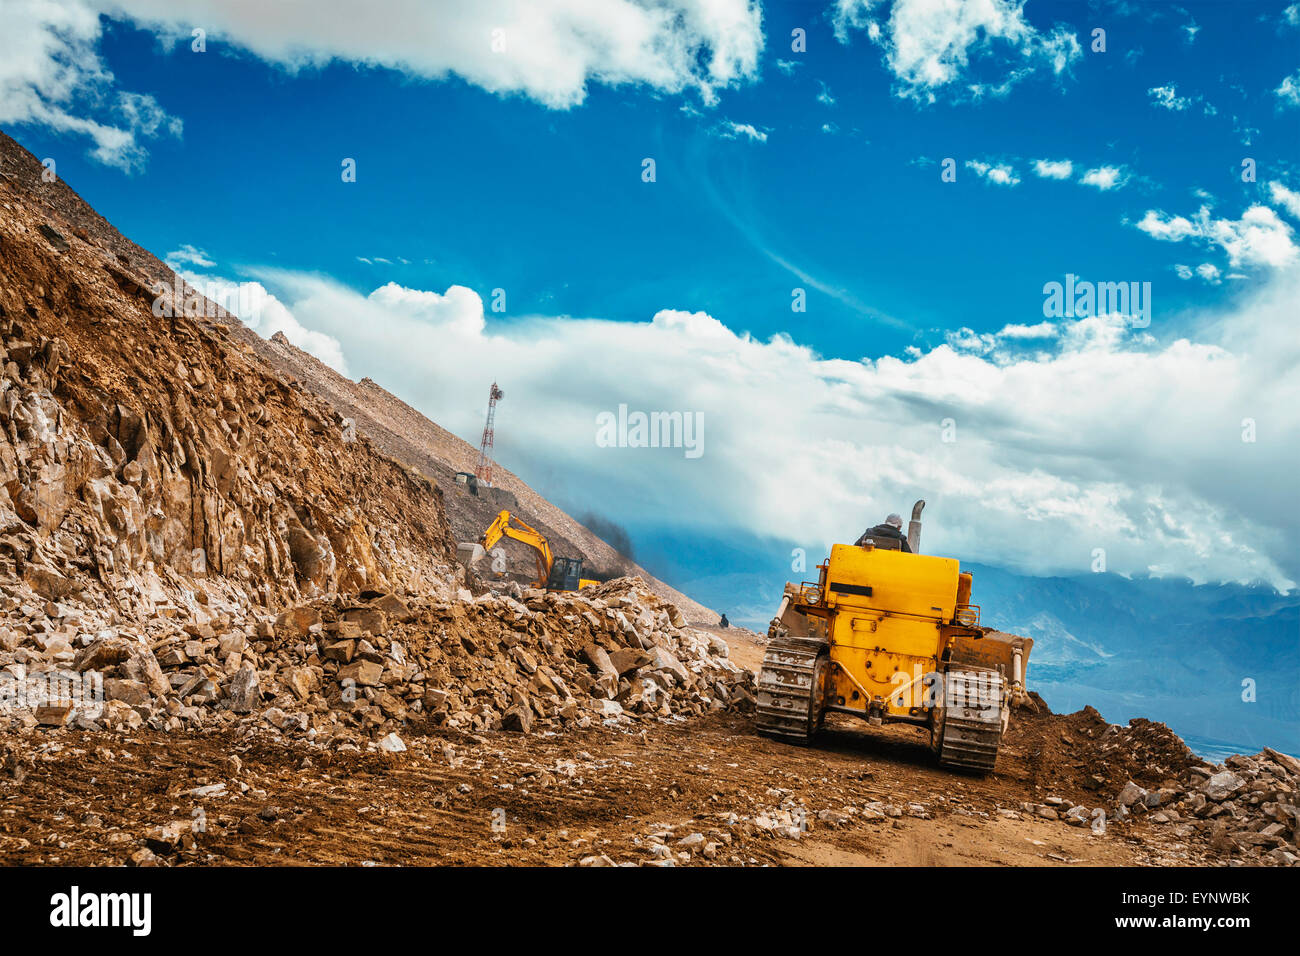 Road cleaning in Himalayas - Stock Image